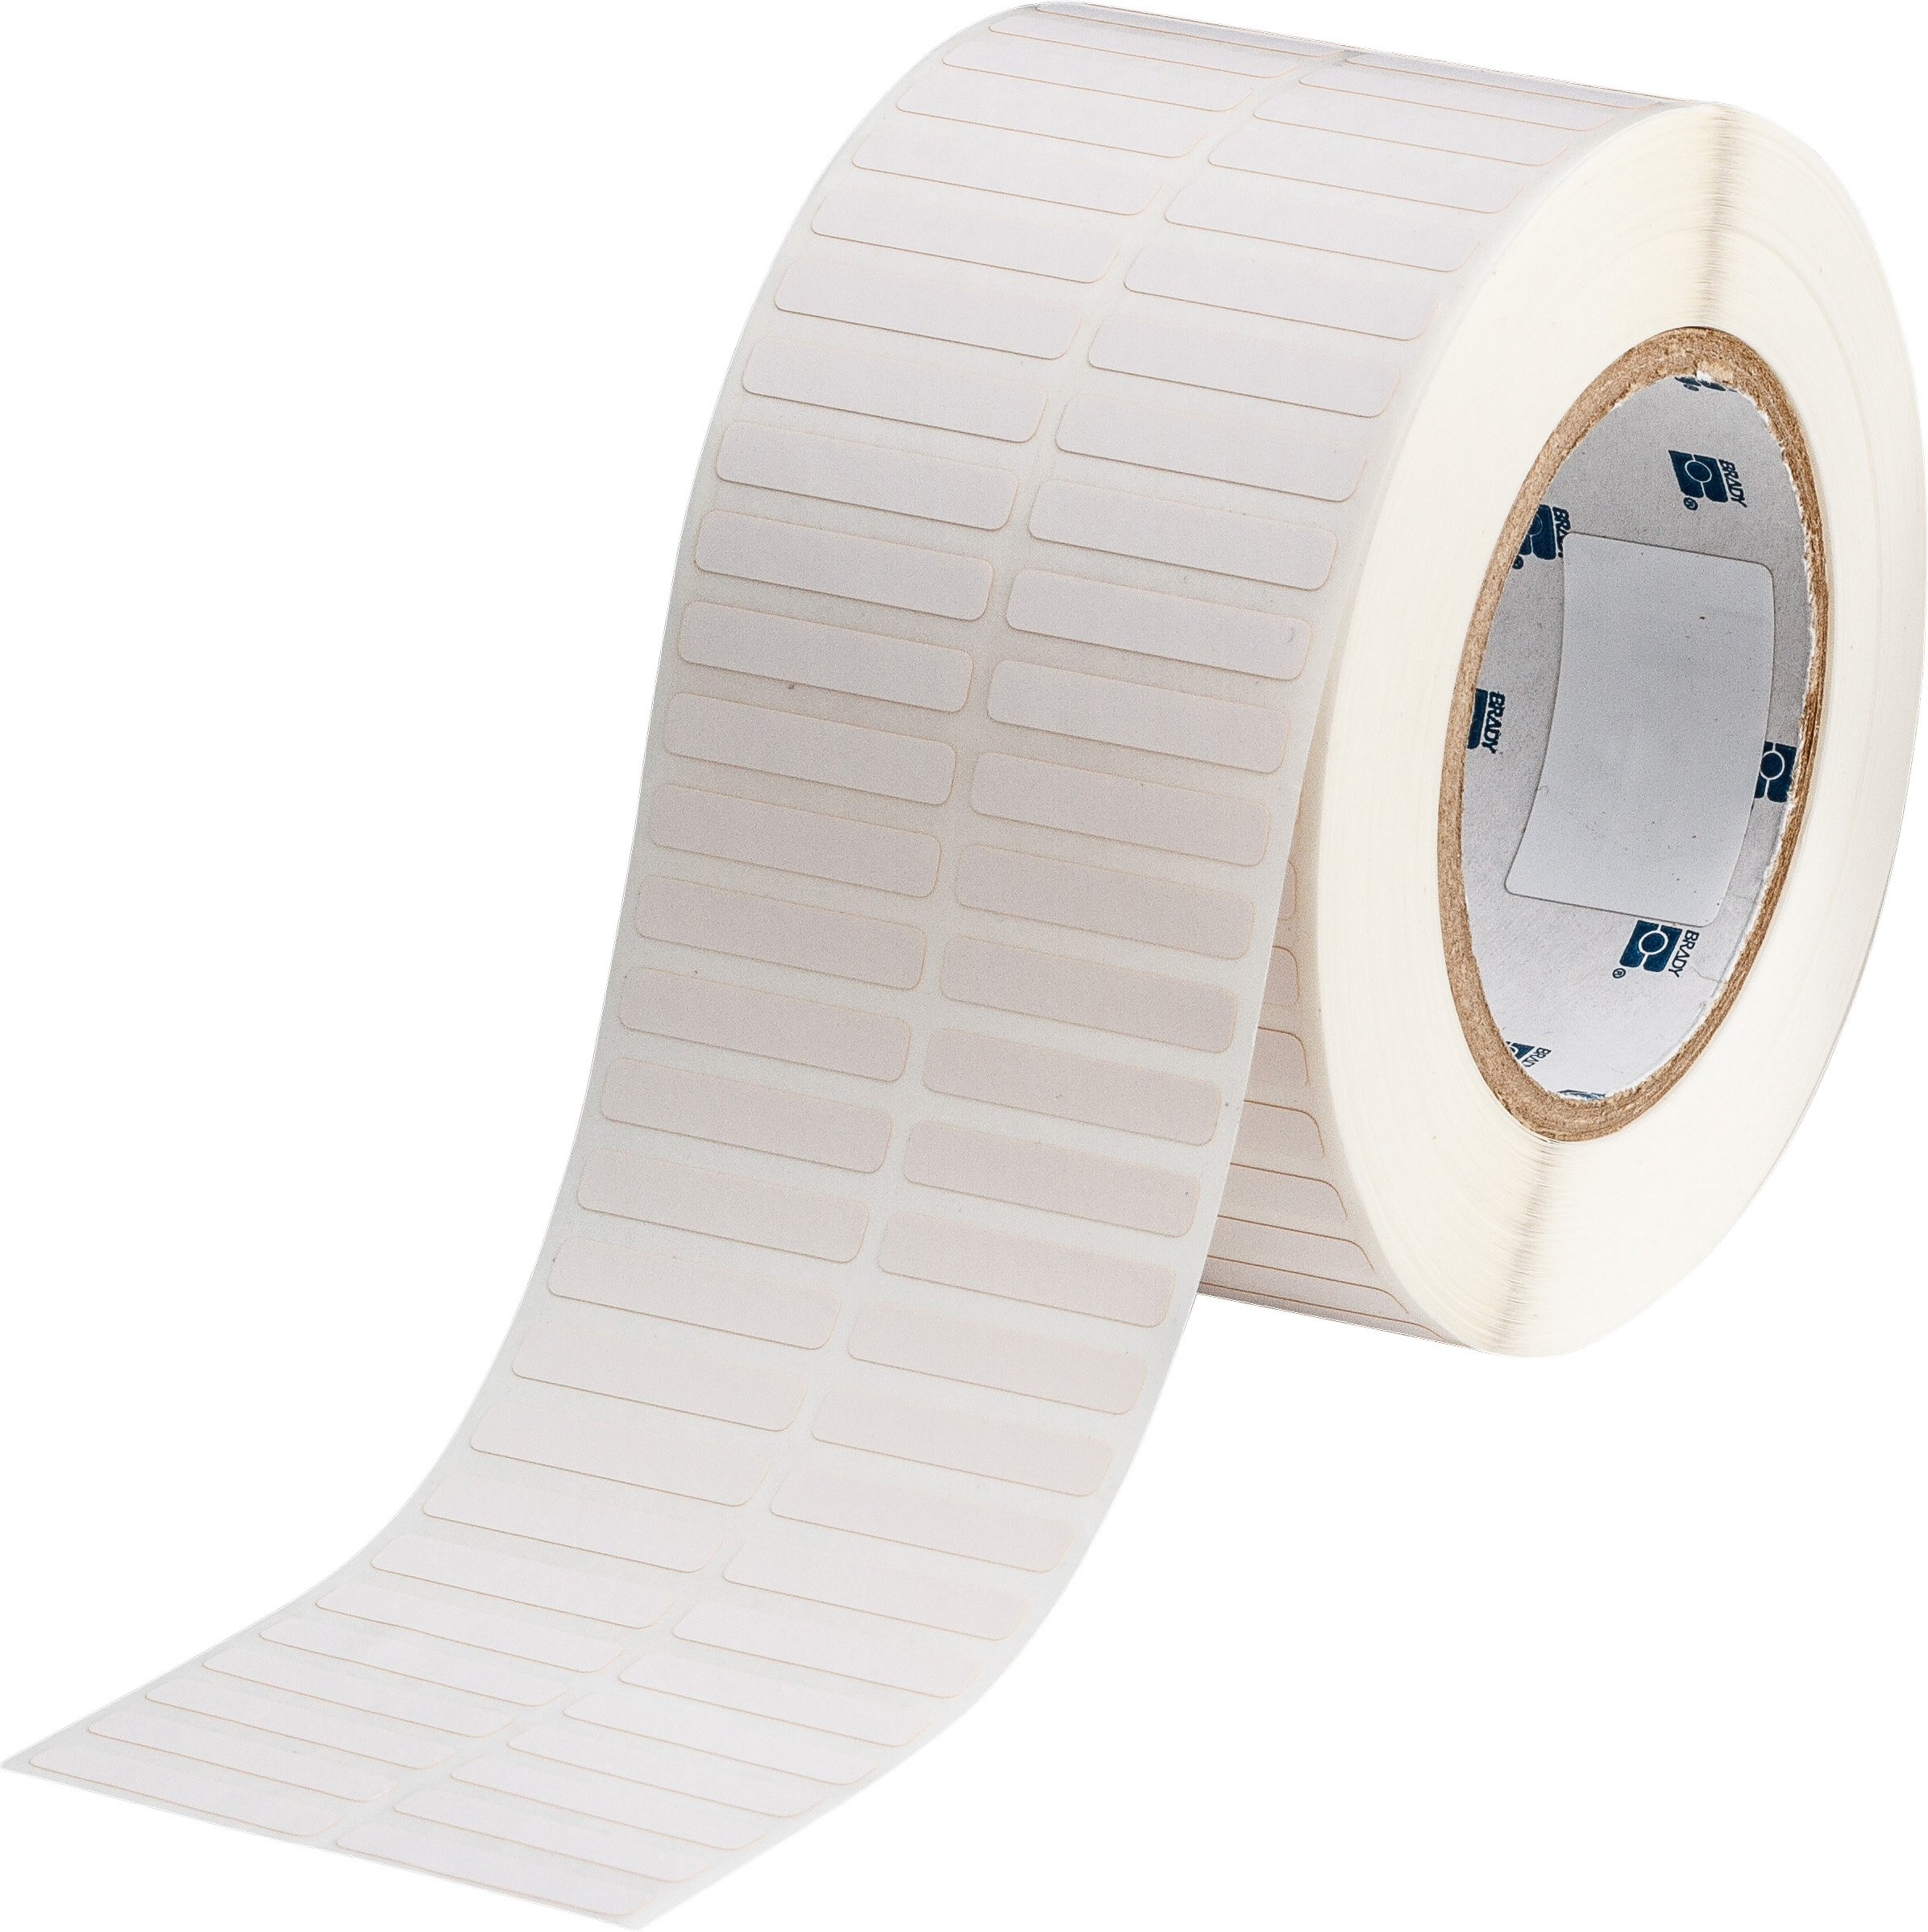 Brady THT-40-497-10 1.375'' Width x 0.25'' Height, 3.05'' Web Width, B-497 Low-Profile Polyimide, Matte Finish White Thermal Transfer Printable Label (10000 per Roll)